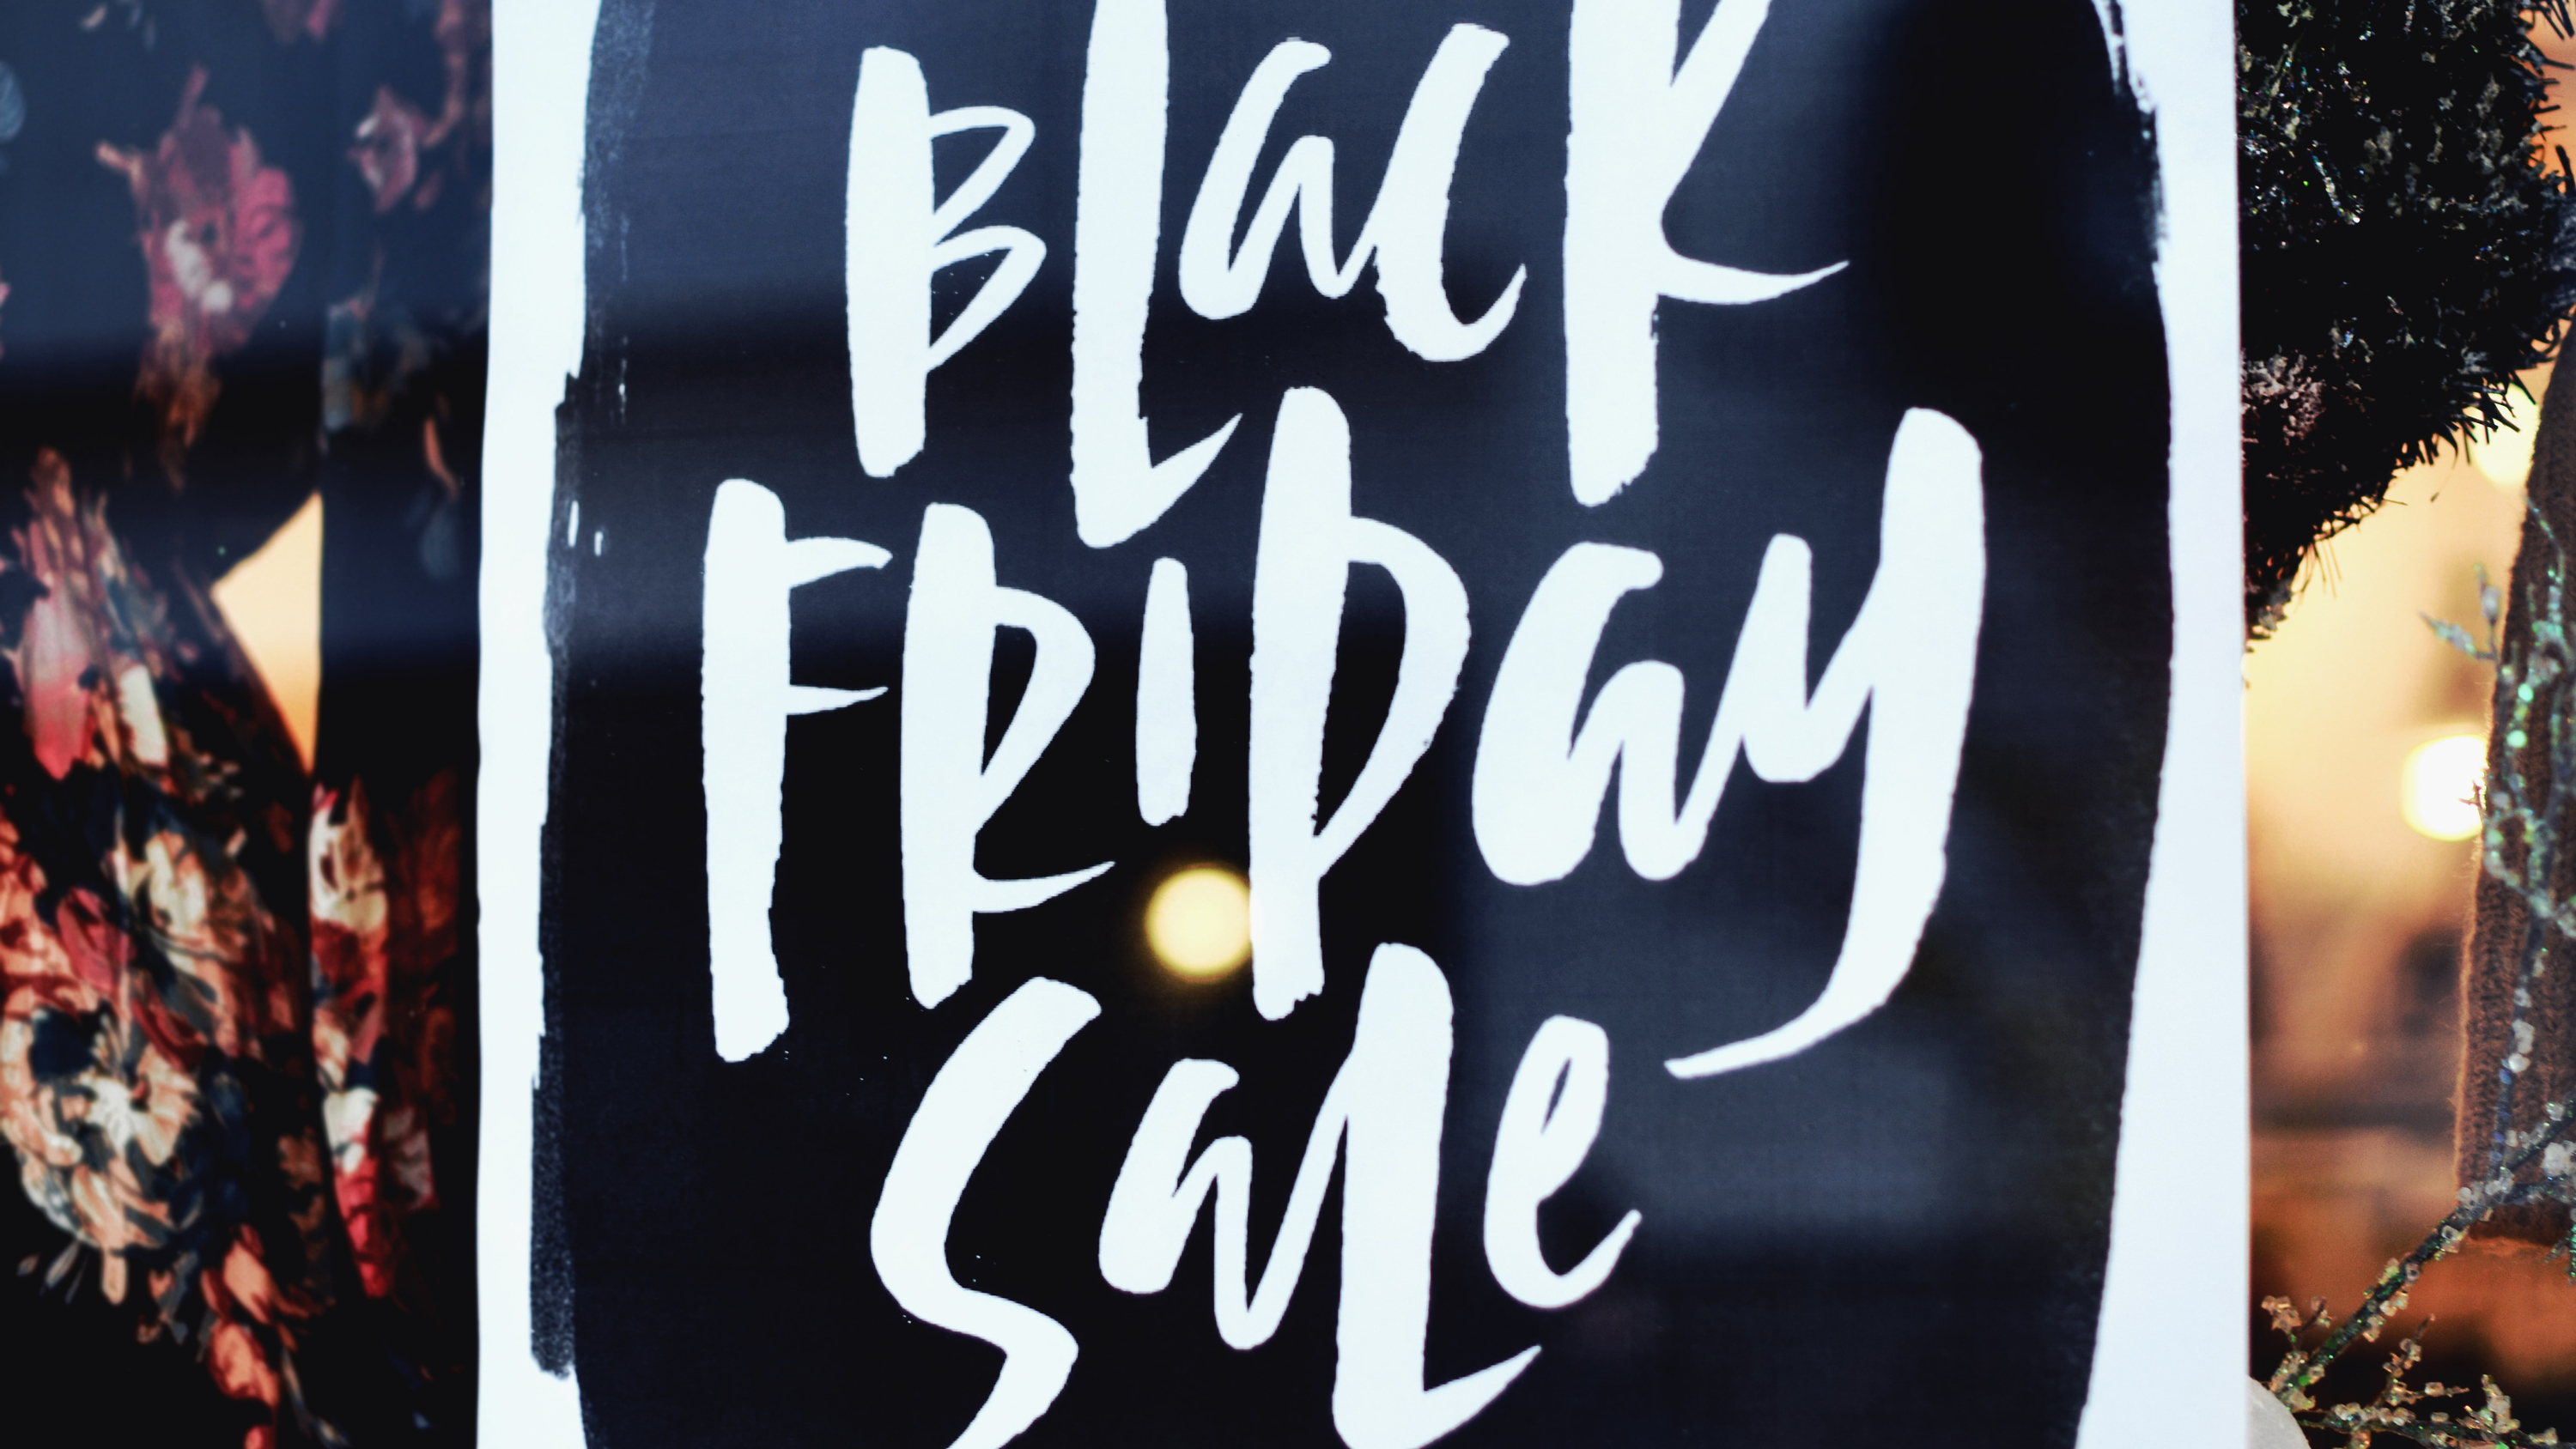 Where to get Black Friday online deals in Japan